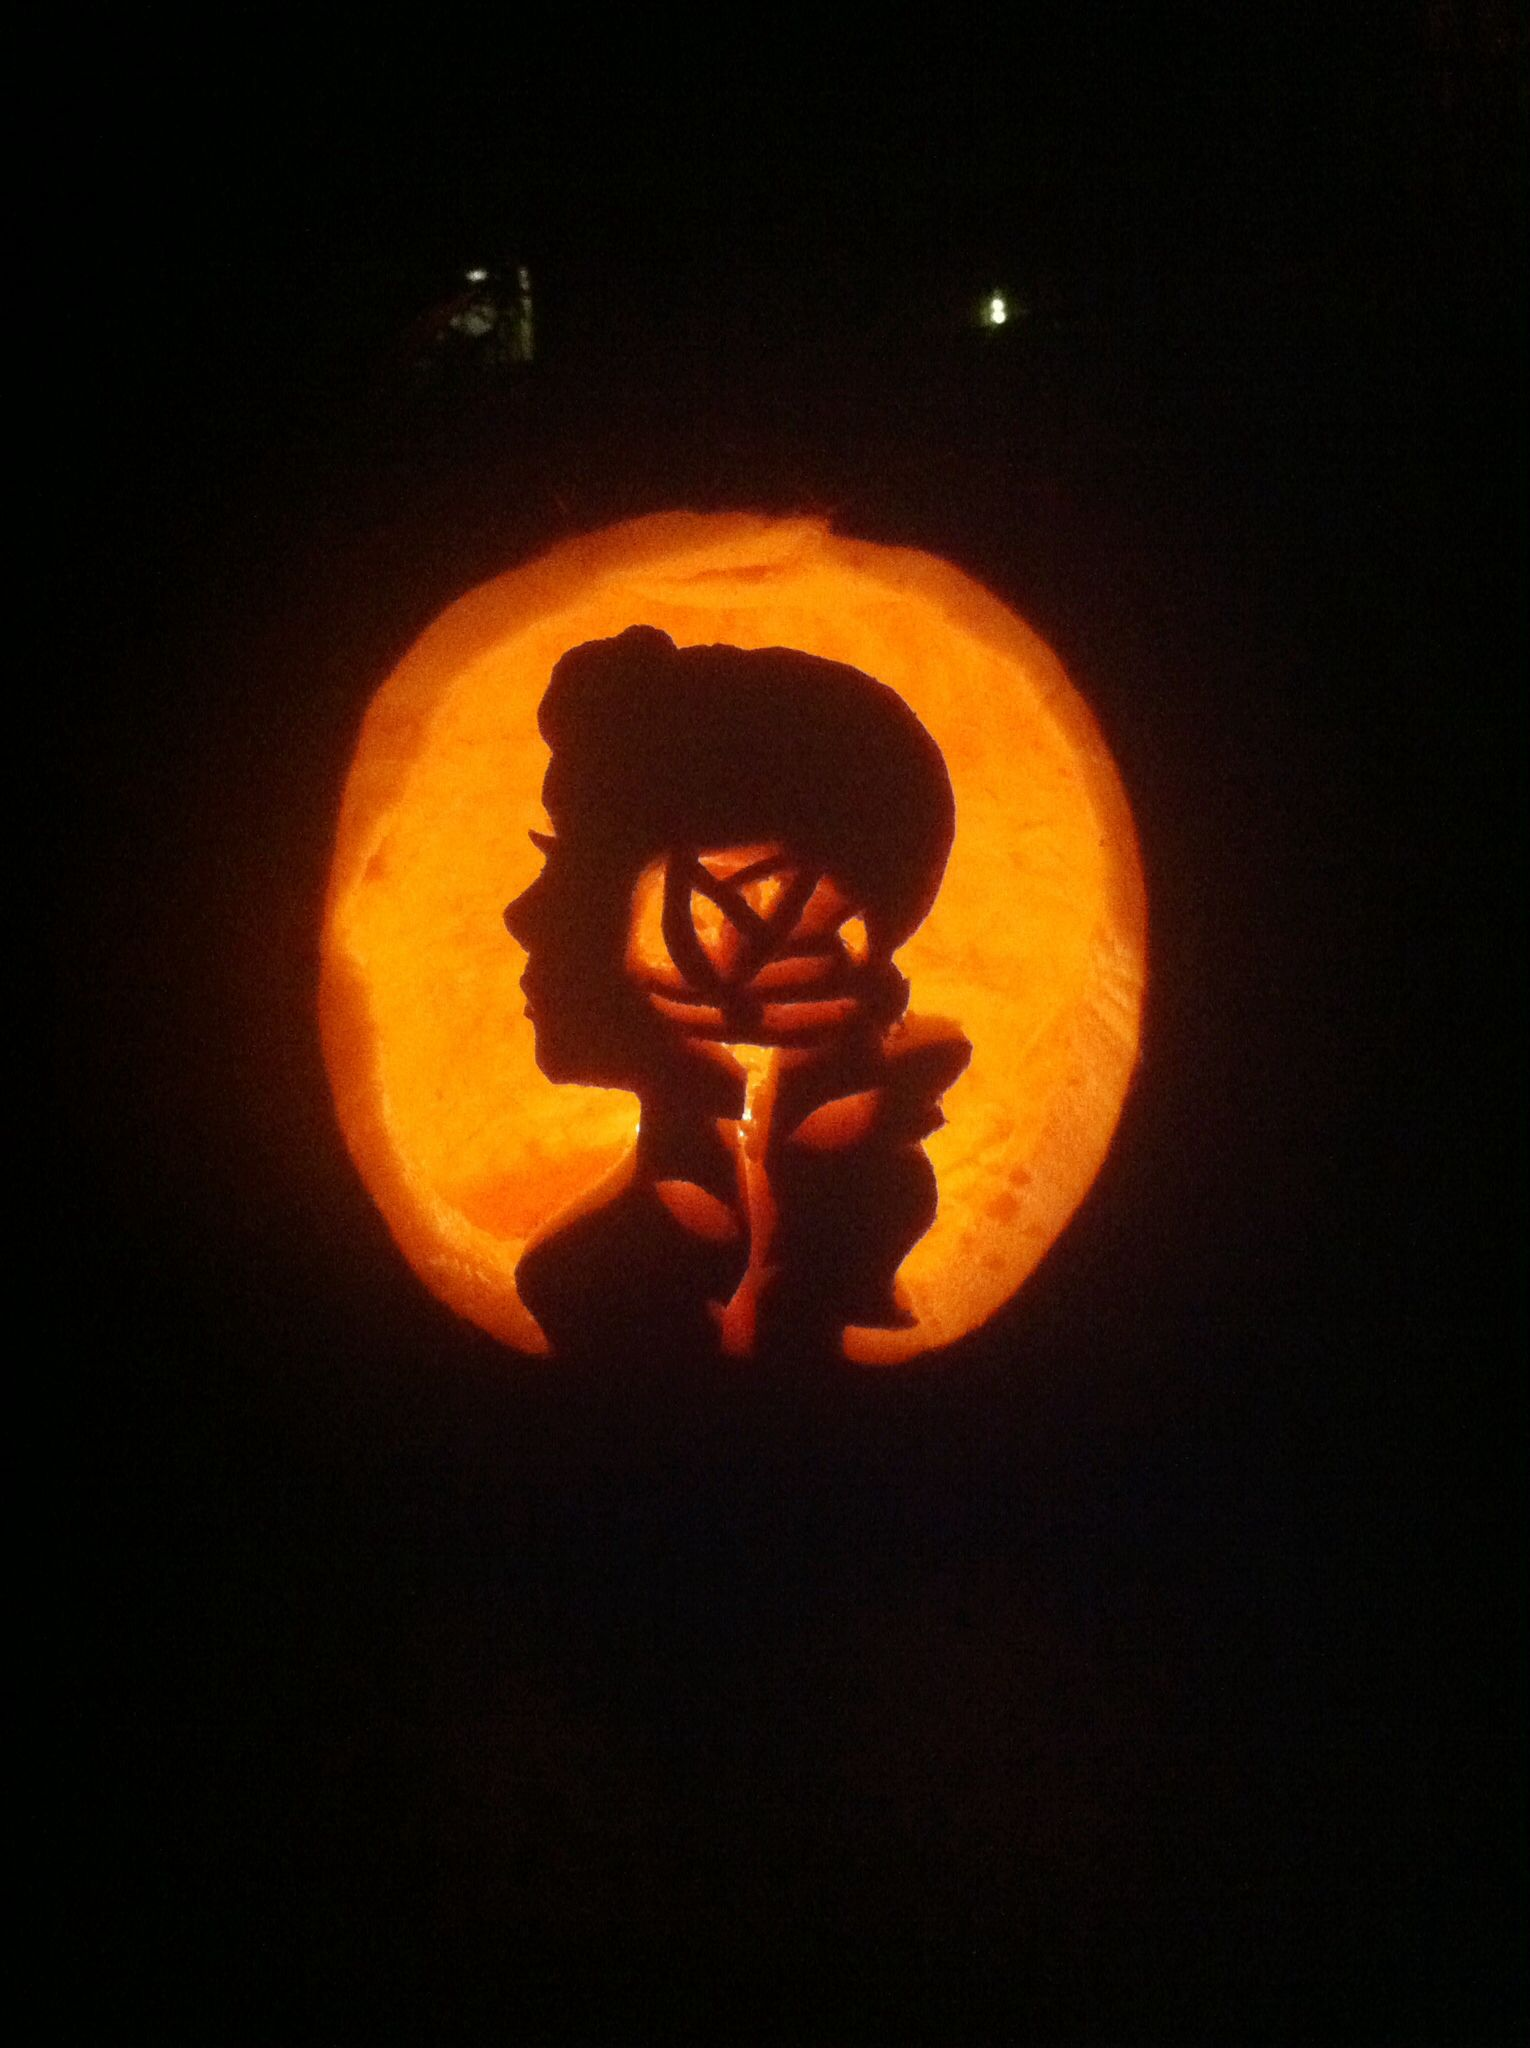 pumpkin template rose  Beauty and the beast Belle pumpkin carving with rose in ...